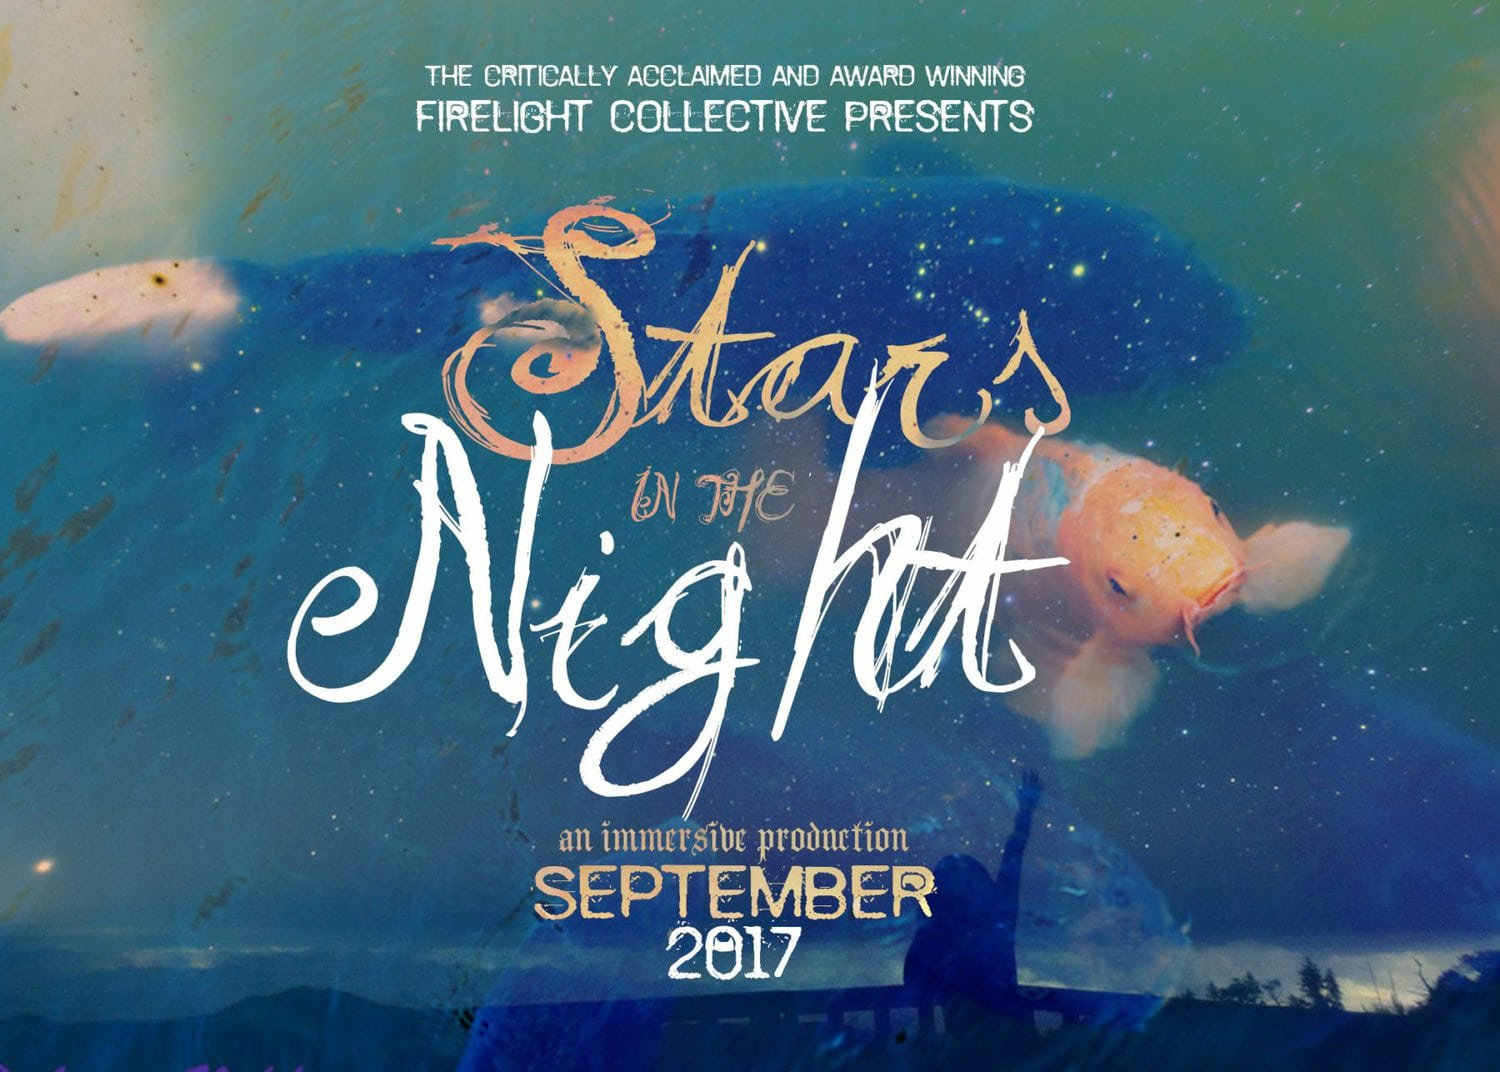 Firelight Collective - Nathan Keyes Stephanie Feury Studio Theater - Stars in the Night